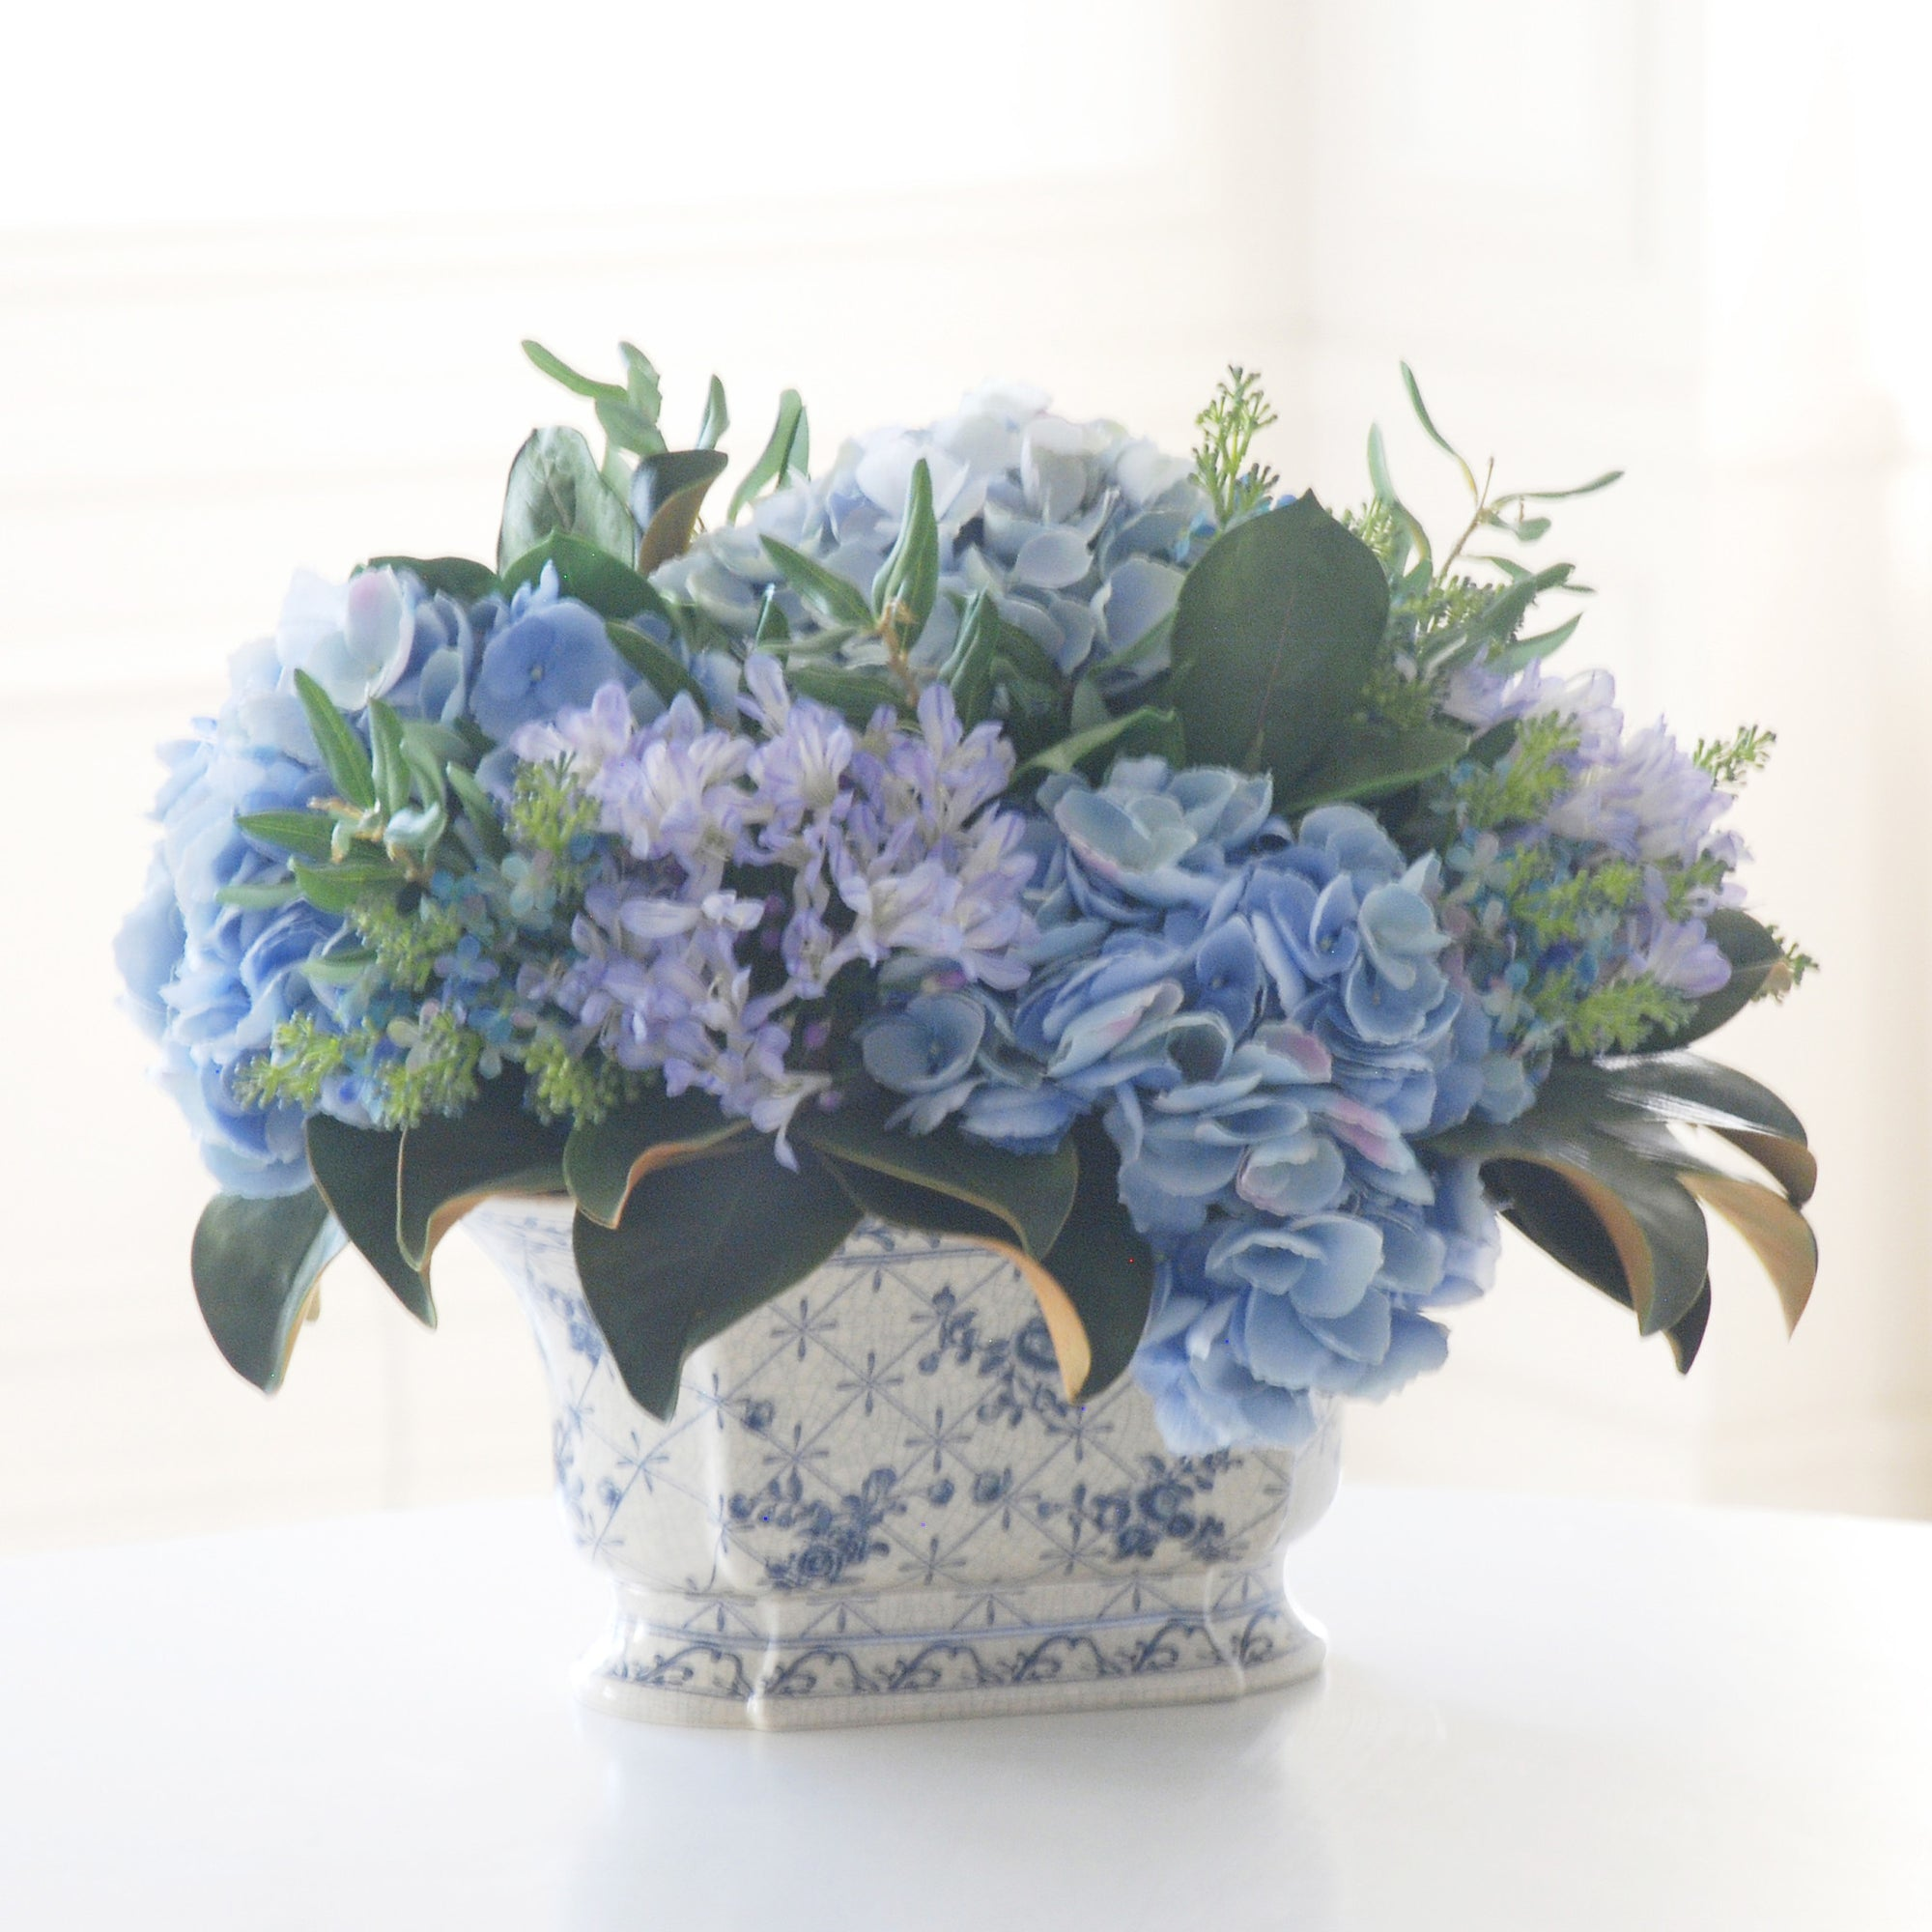 HYDRANGEA AND OLIVE LEAF CHINOISERIE (WHP91031-BL) - Winward Home faux floral arrangements